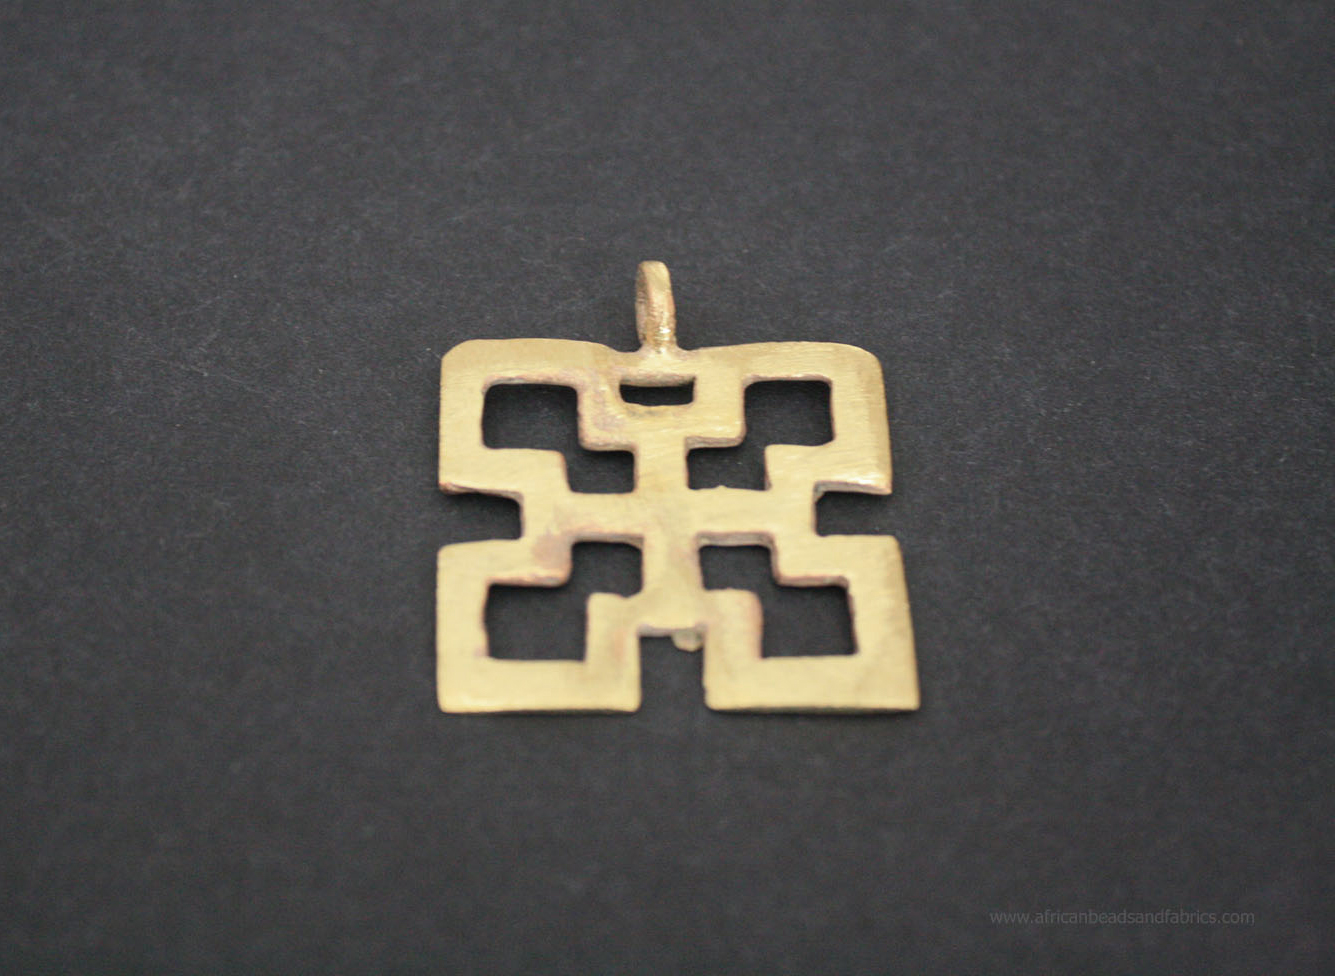 African-brass-adinkra-pendant-nsaa-symbol-of-good-quality-and-durability-2